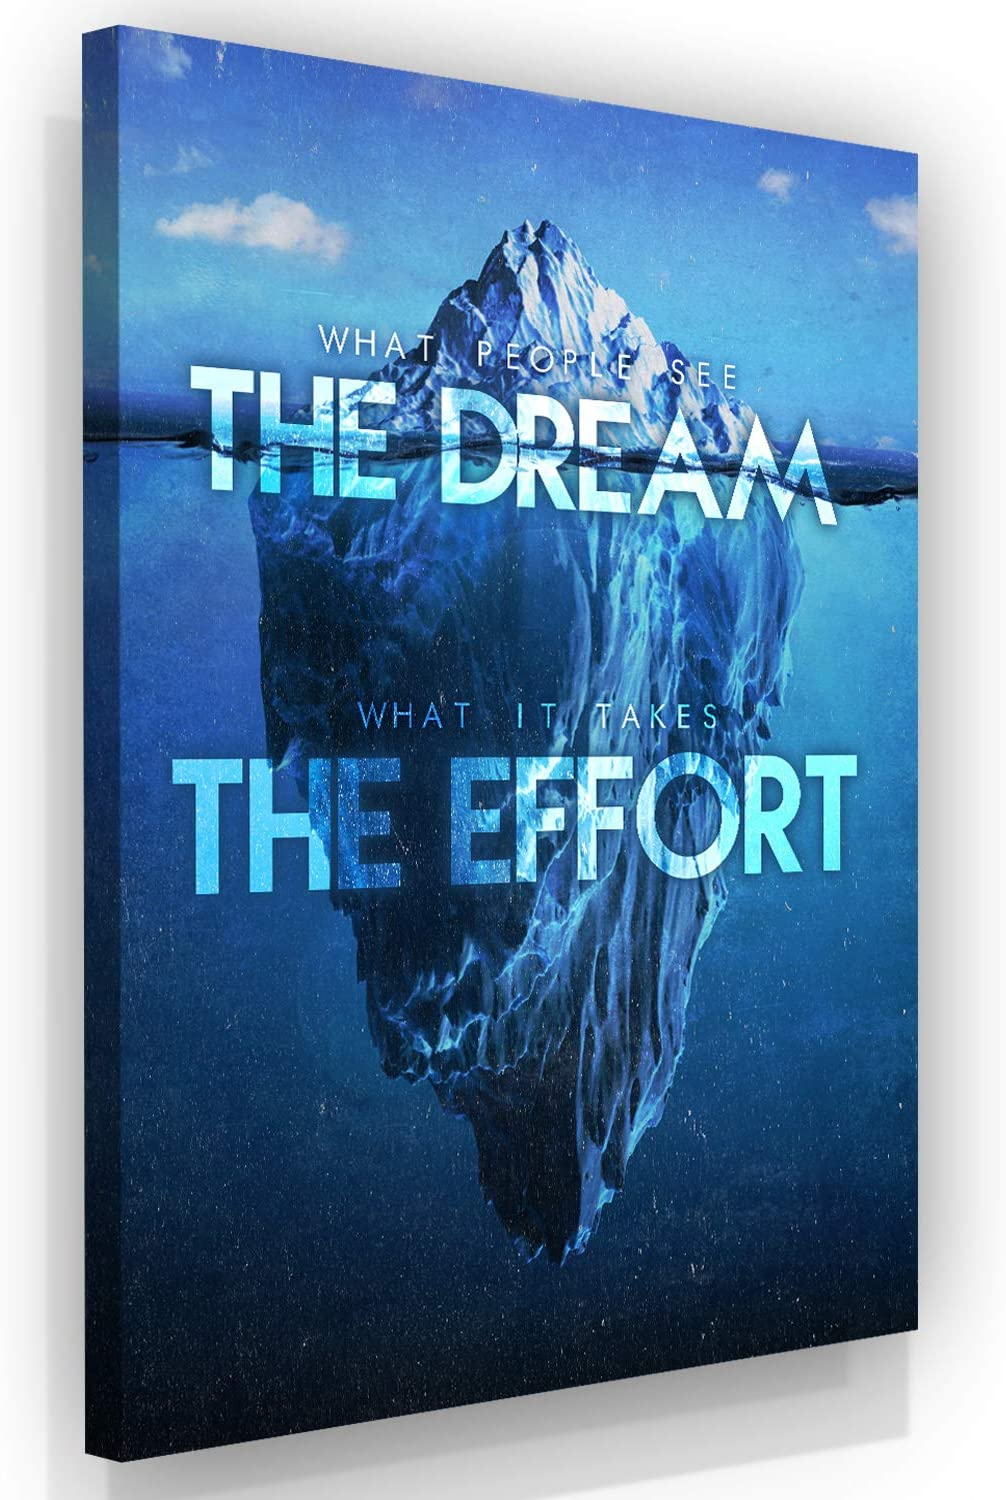 SuccessHuntersPrints Motivational Art Inspirational Quotes - The Dream The Effort - Framed Office and Home Wall Art Decor Posters for Entrepreneurs and Business